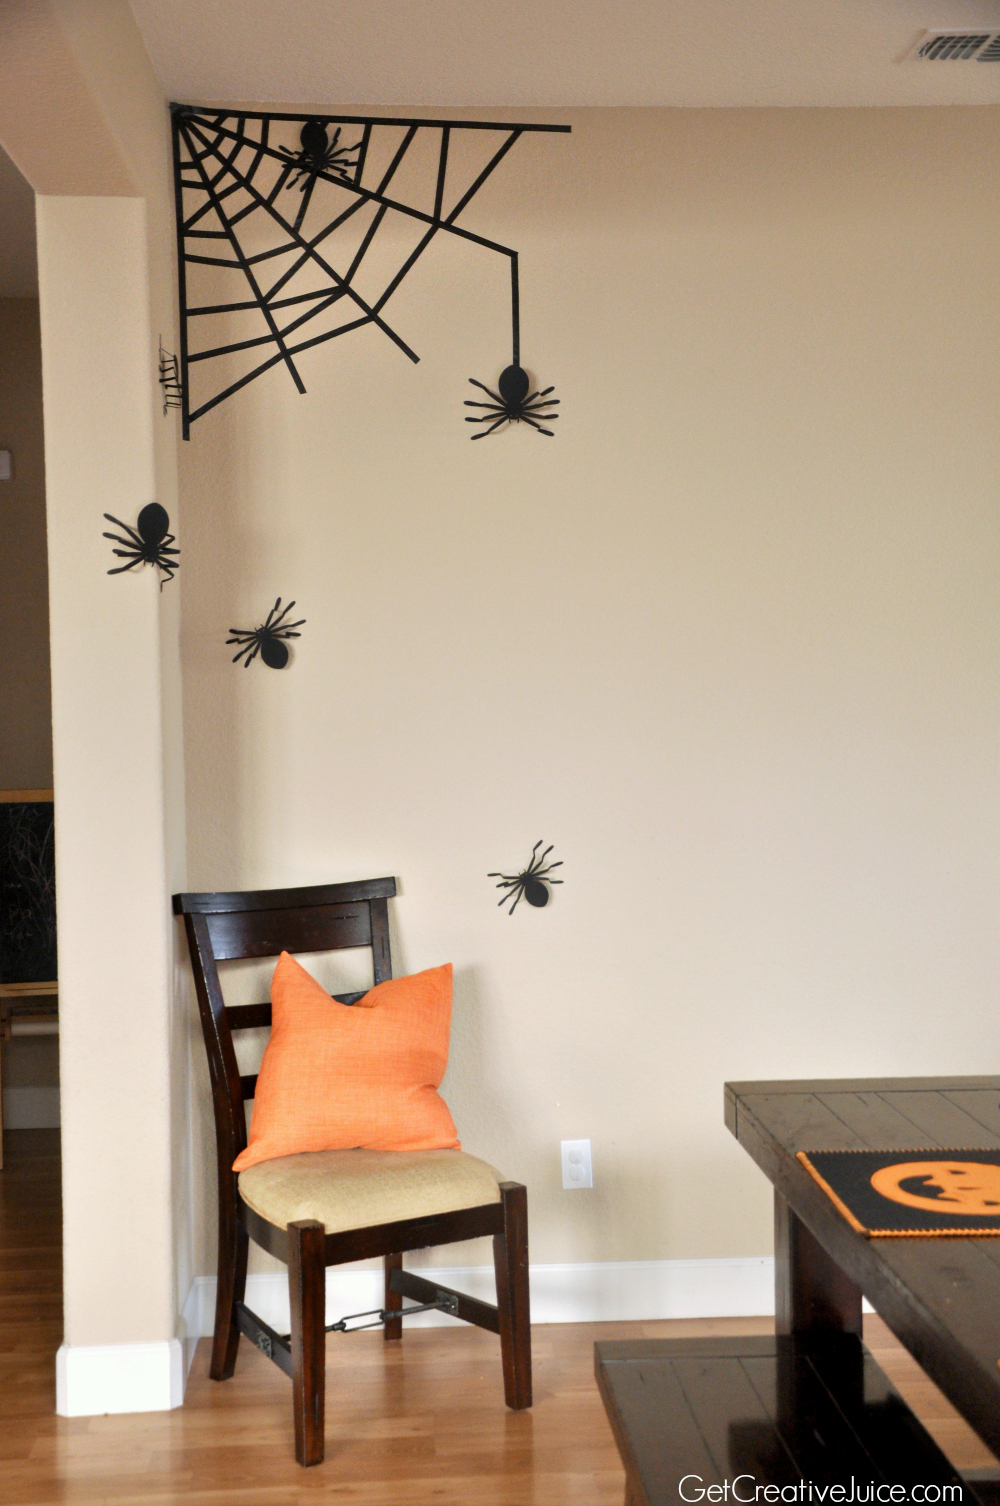 Fancy Washi Tape Spider Web Wall Decor Easy U Fast DIY Halloween Decoration